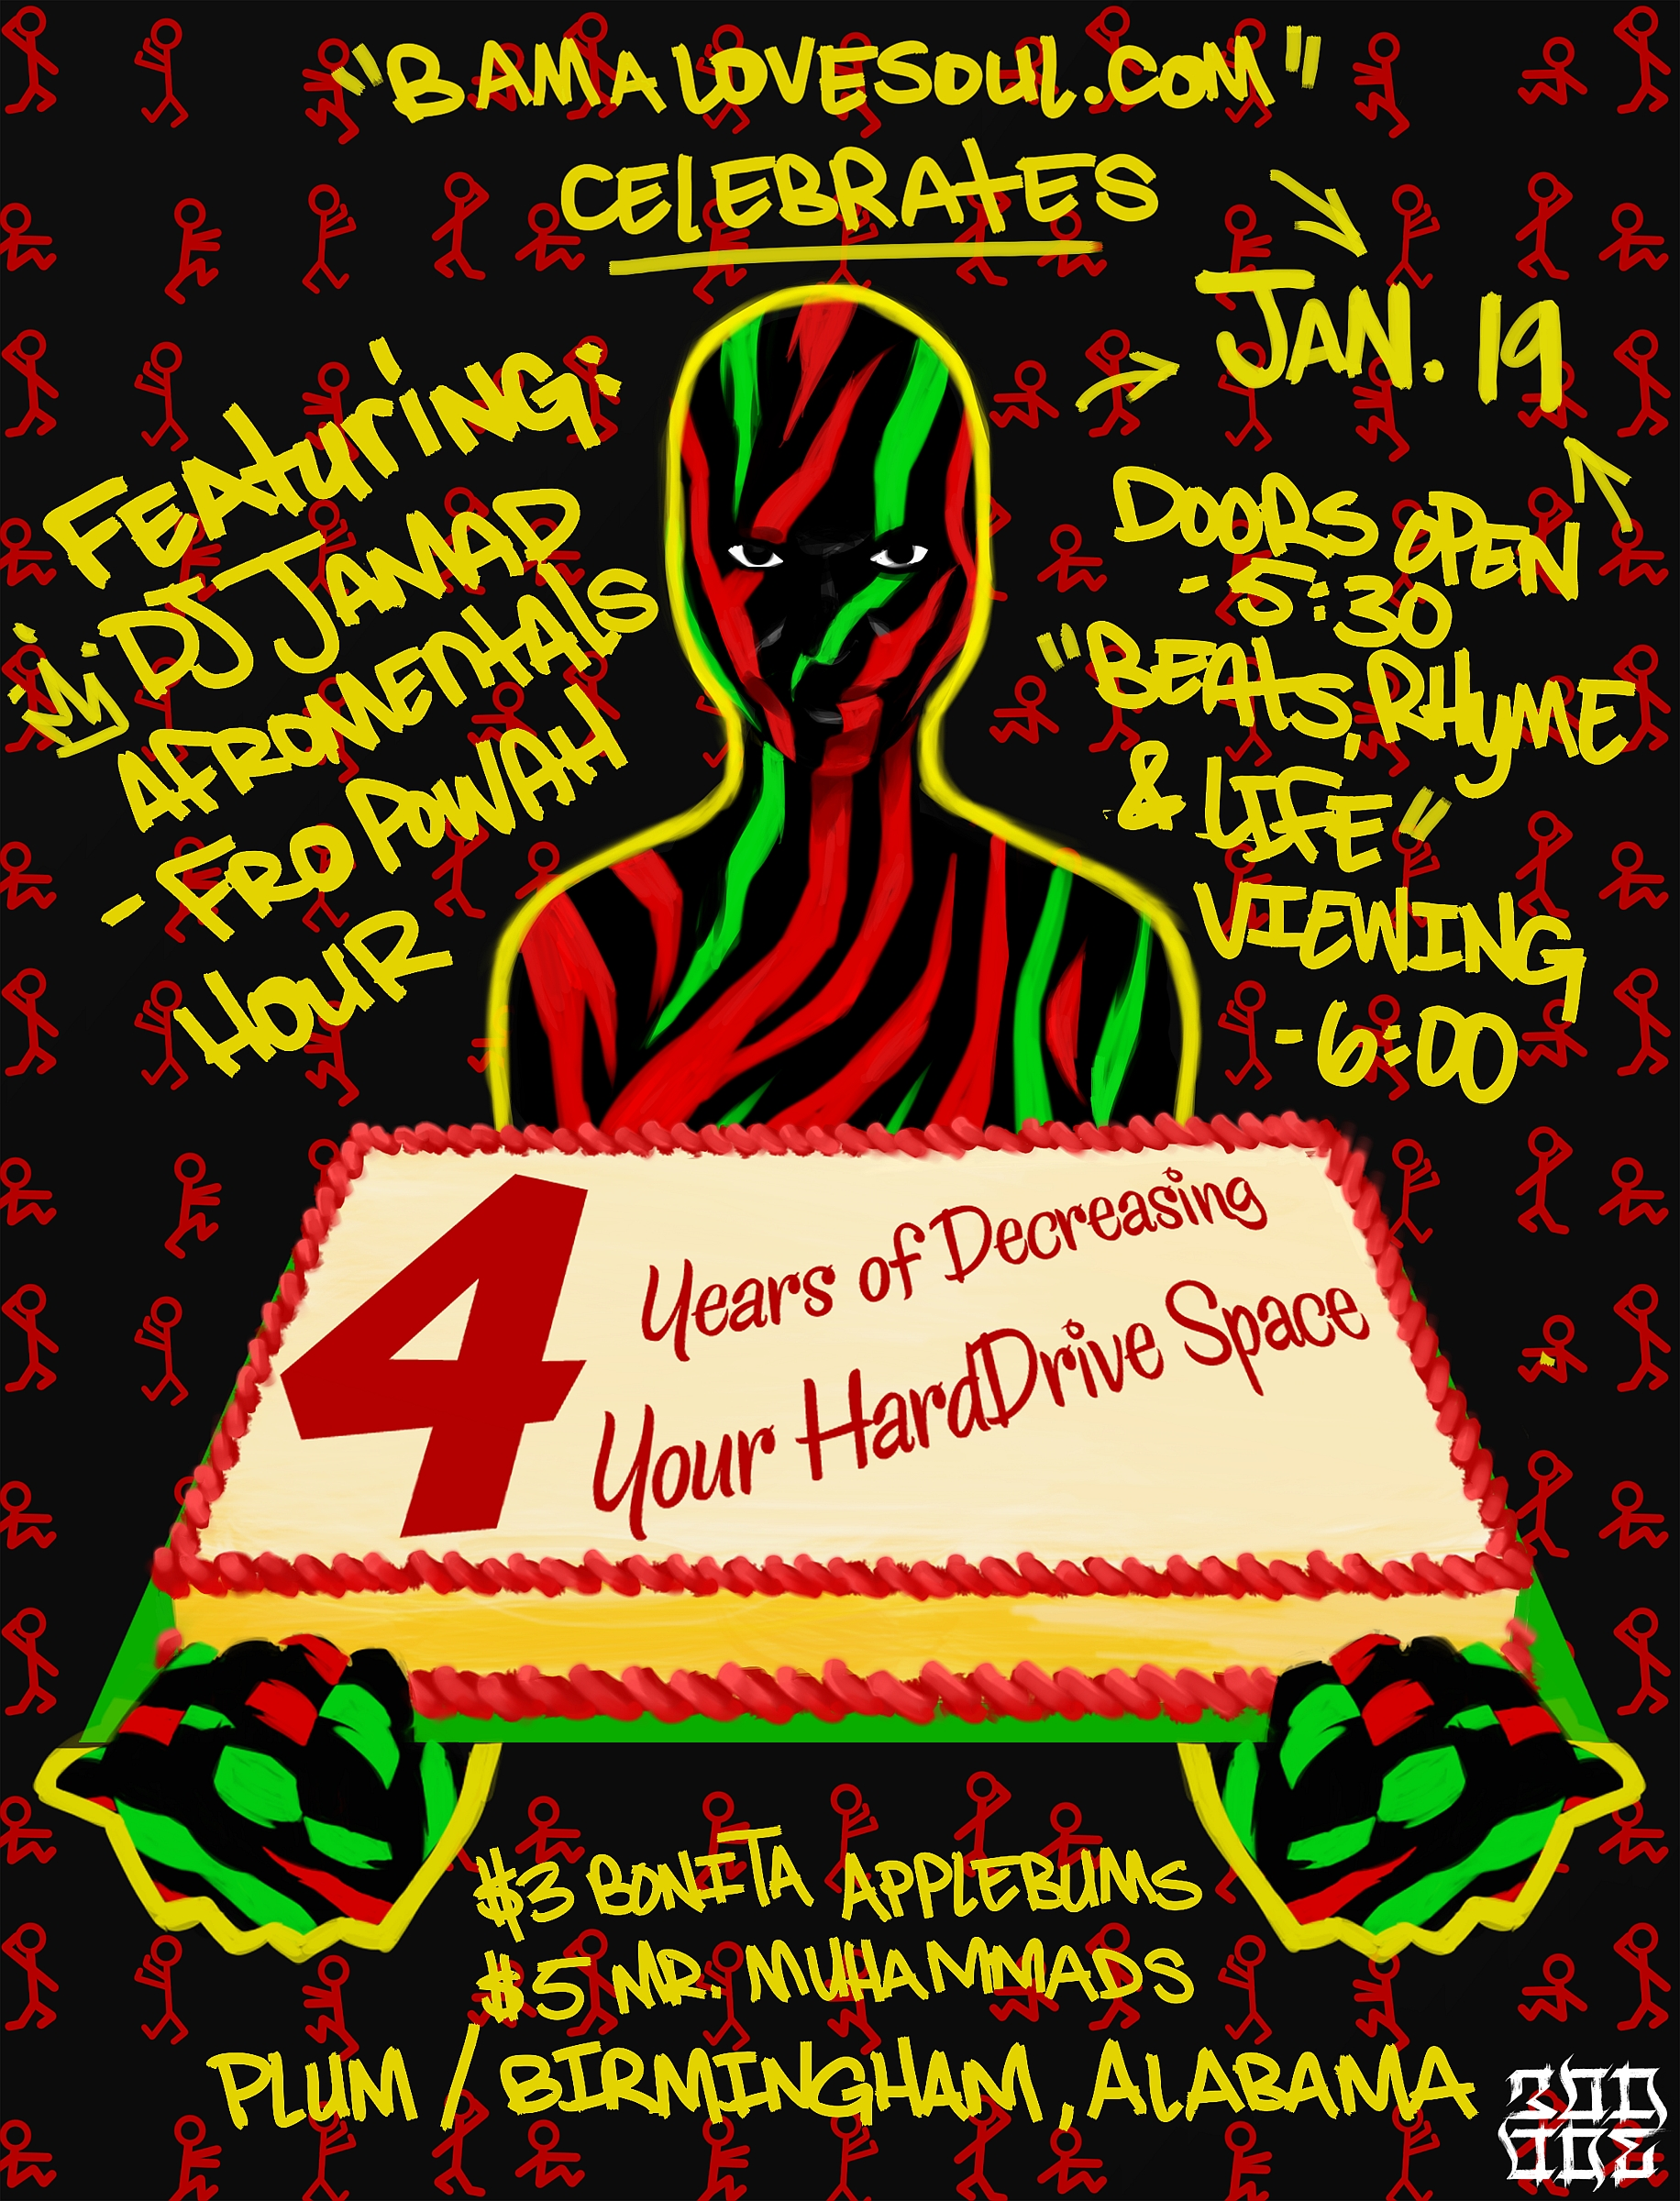 BamaLoveSoul.com 4 Year Anniversary w/DJ Jamad January, 19 2012